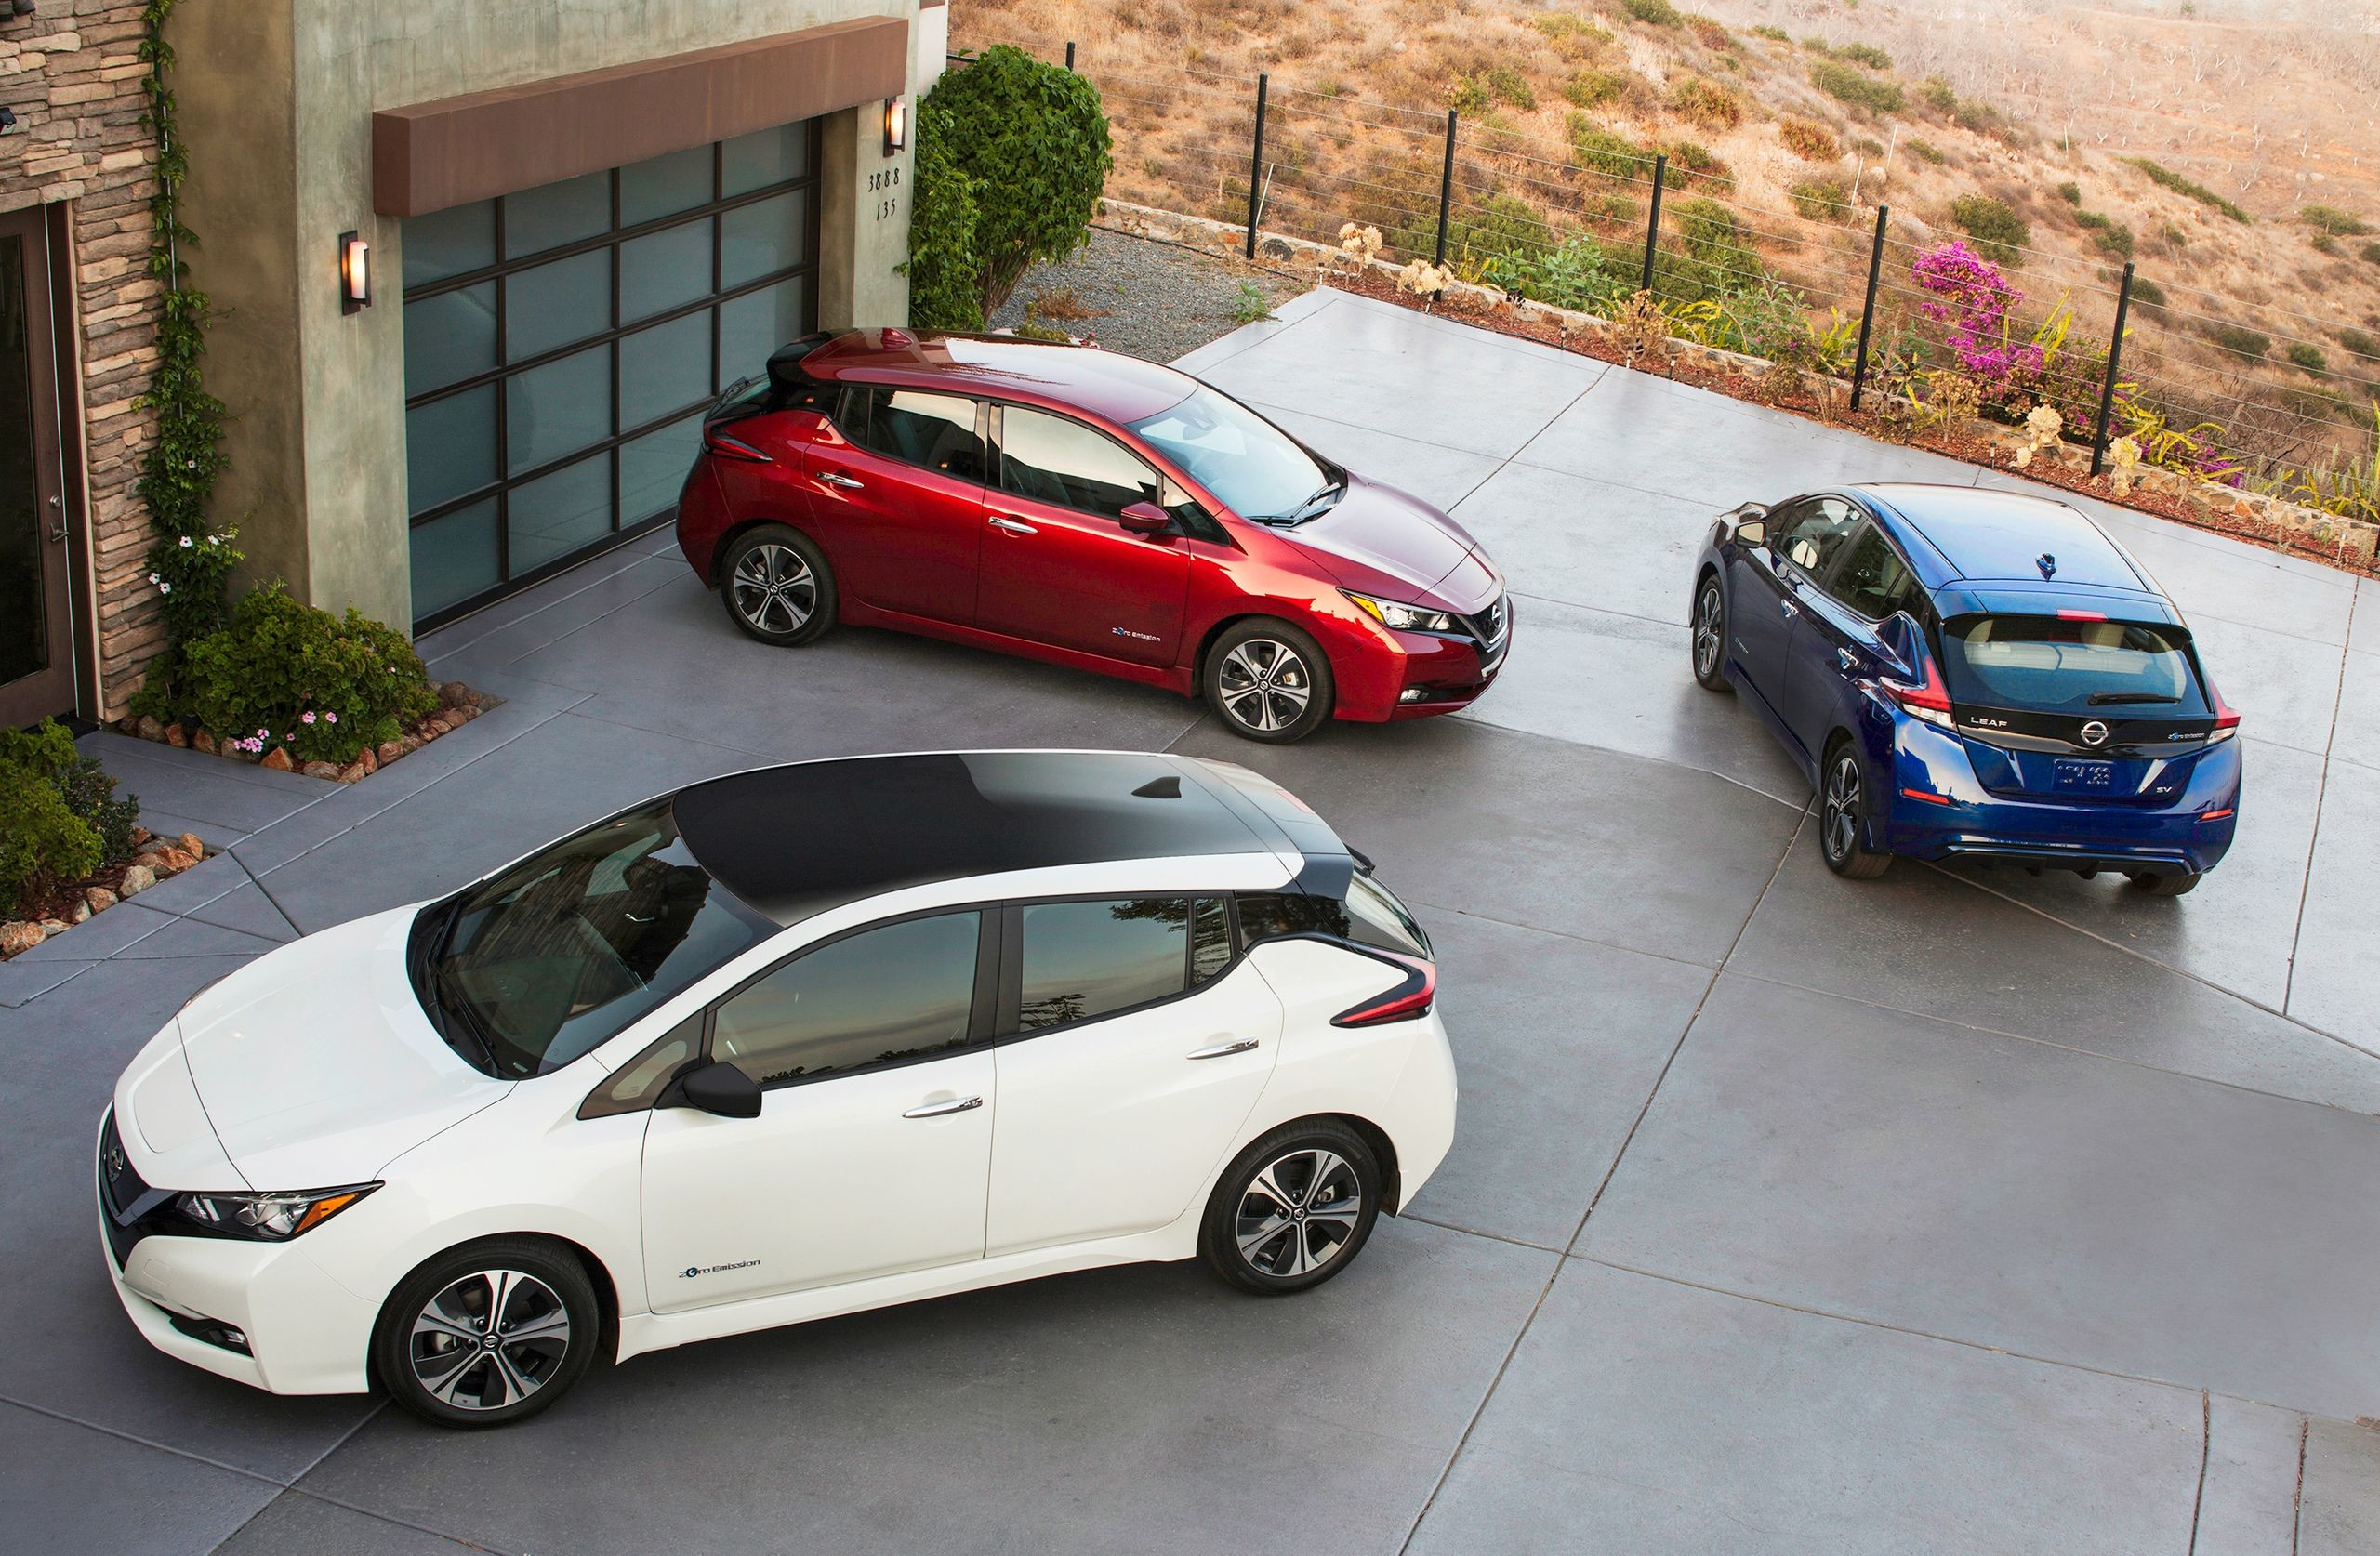 2560x1674 2018 Nissan LEAF Wallpaper Galore: Own It In January, On Your Desktop Now